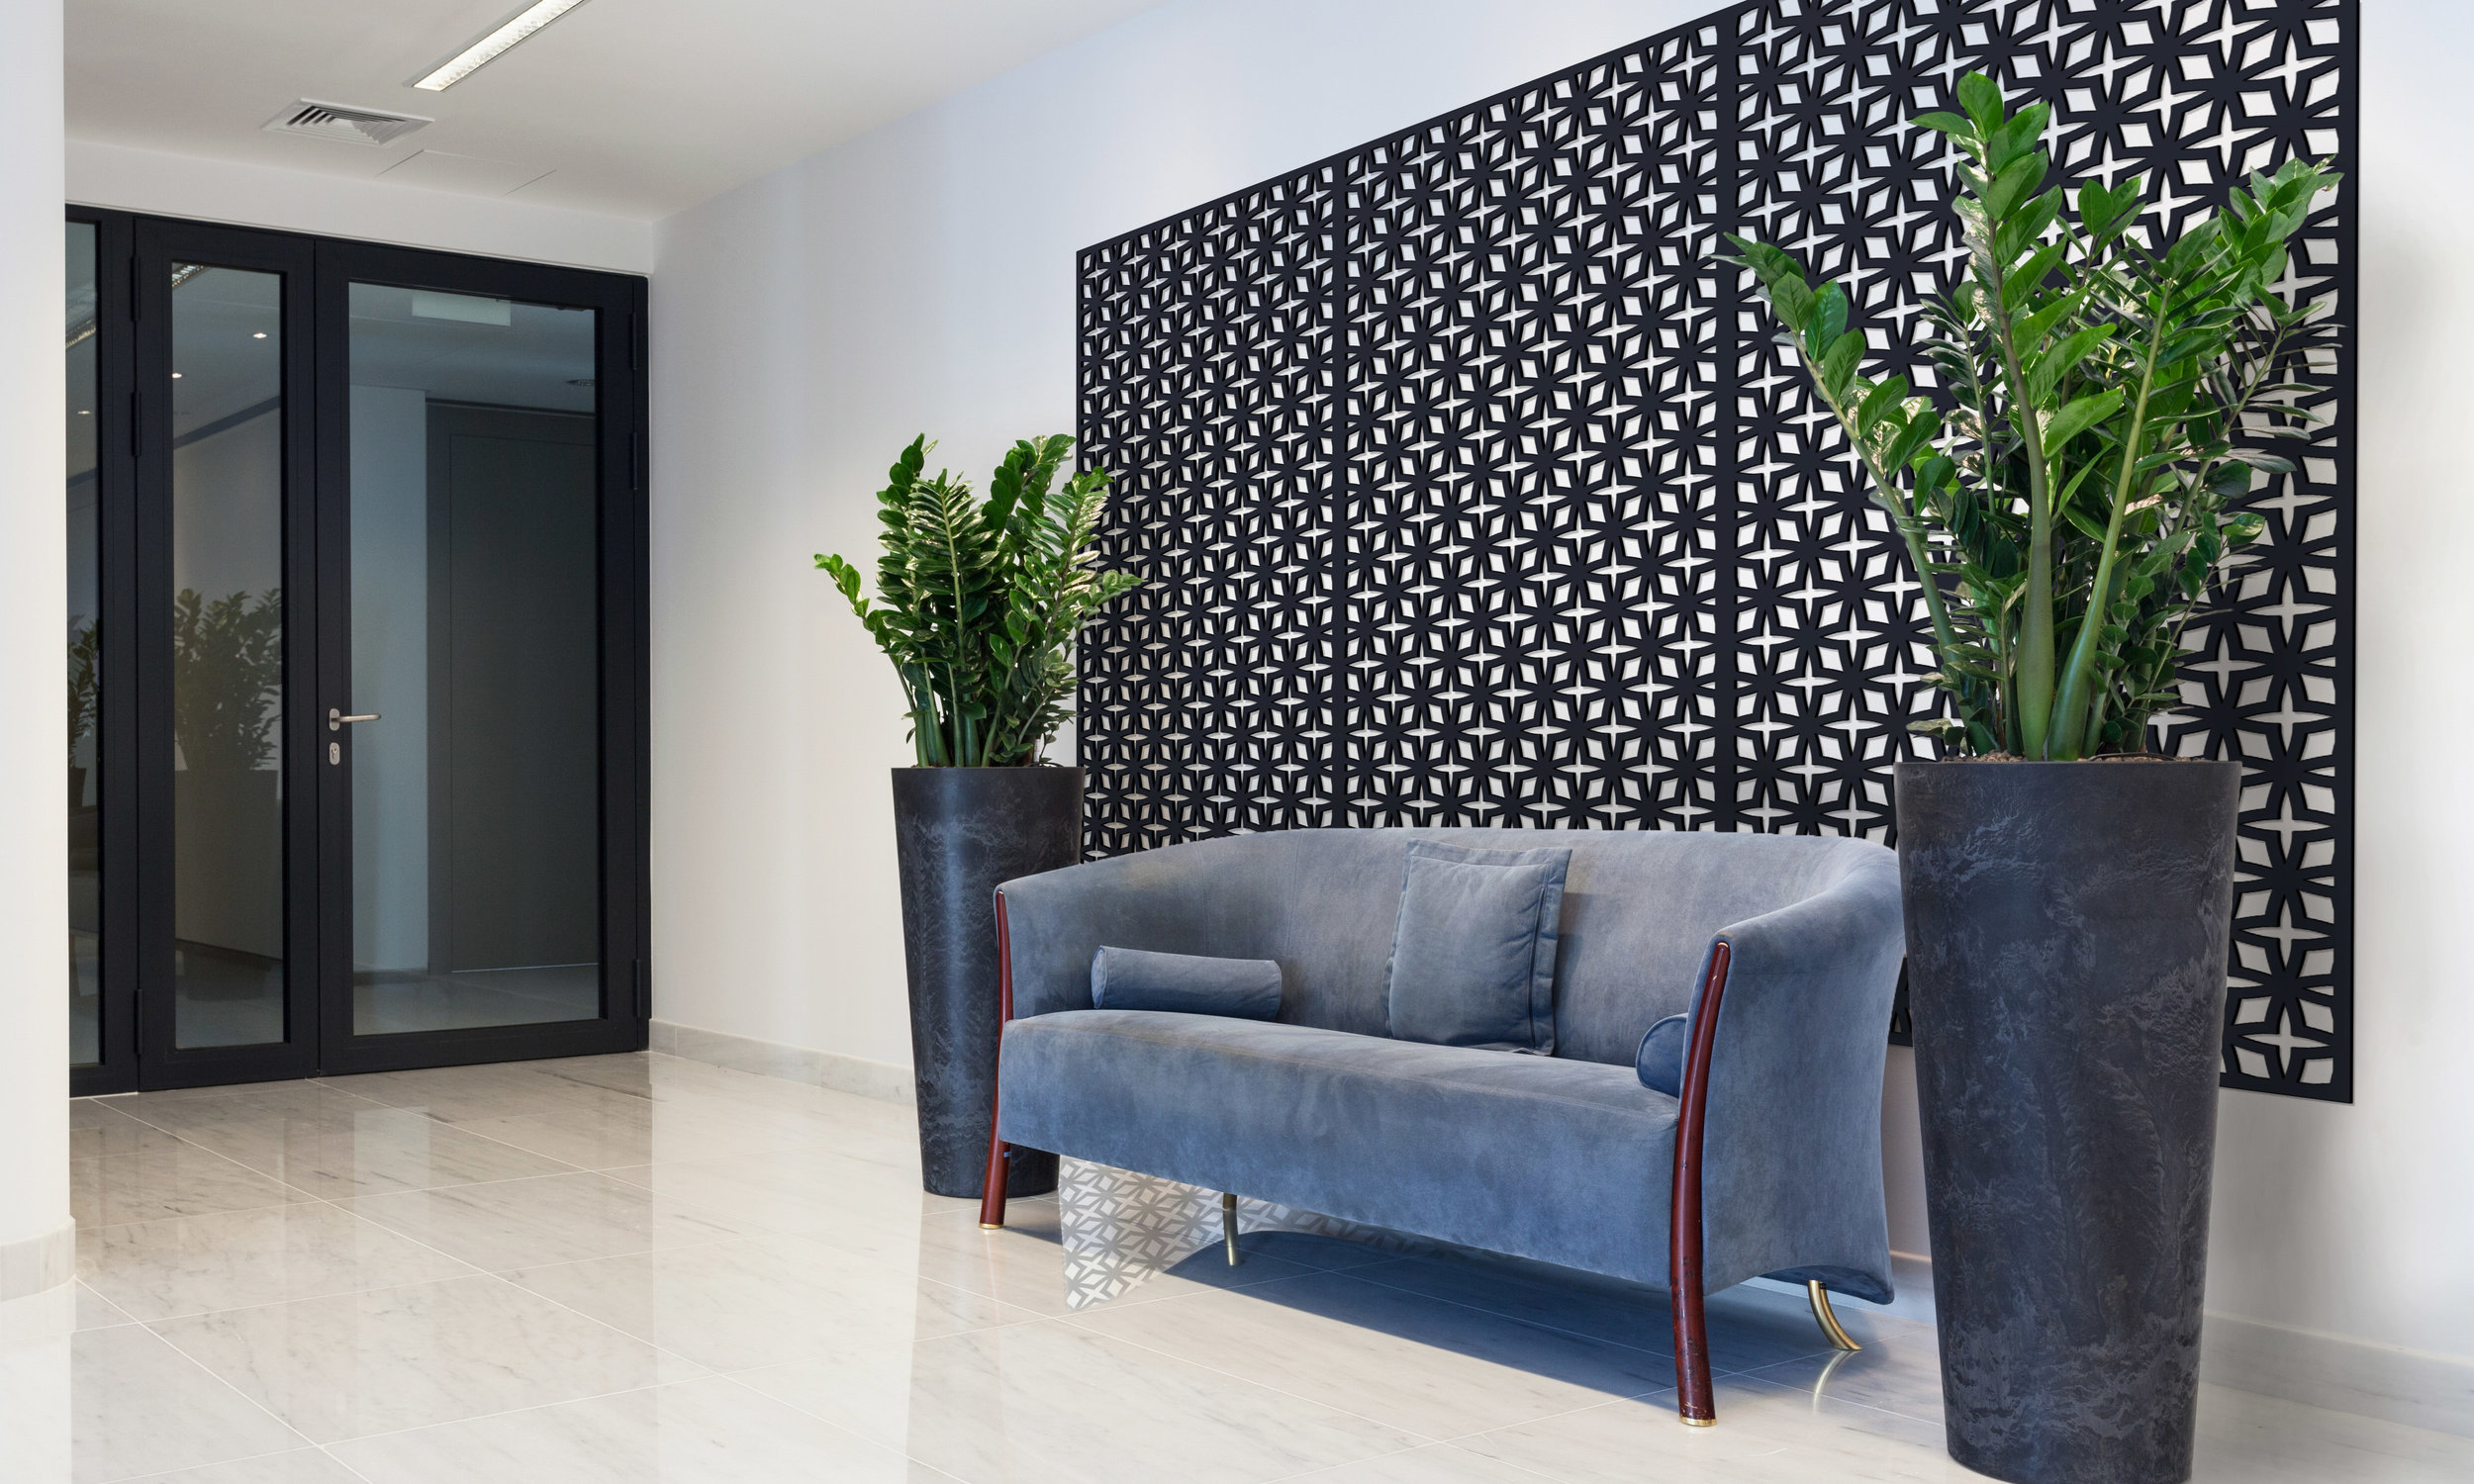 Installation Rendering B   Rota Star decorative office wall panel - painted